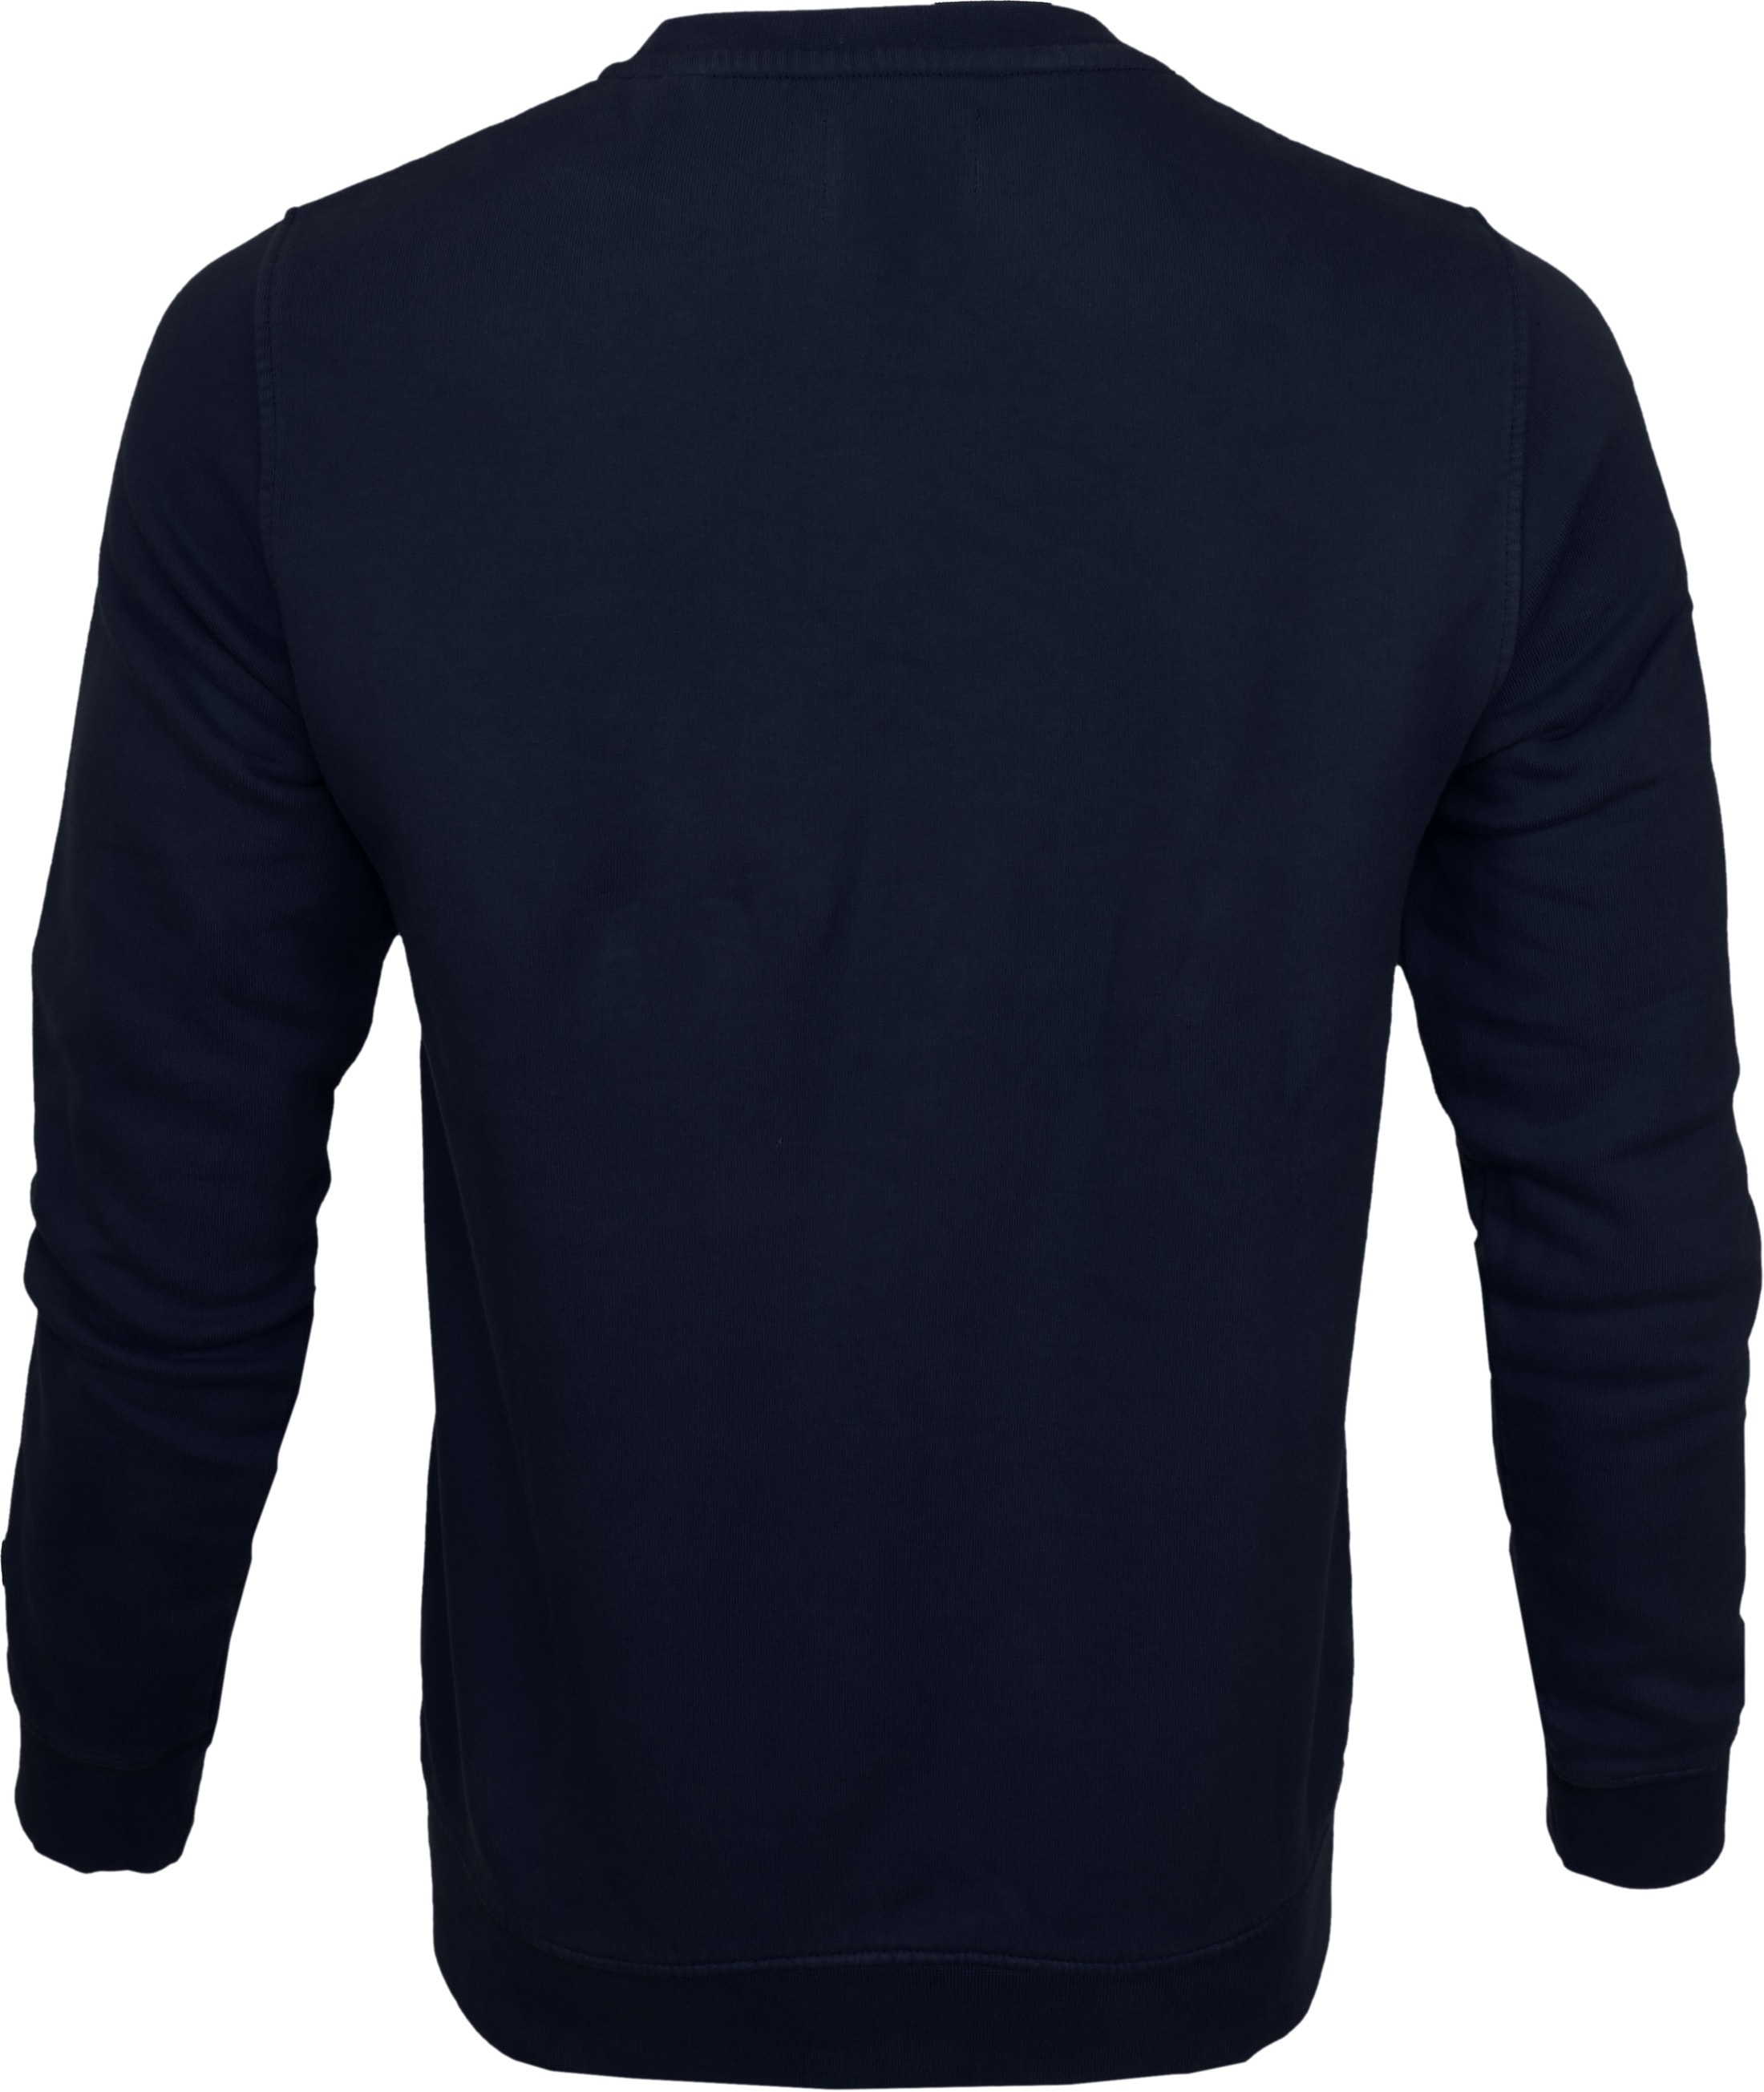 Colorful Standard Sweater Navy Blue foto 2